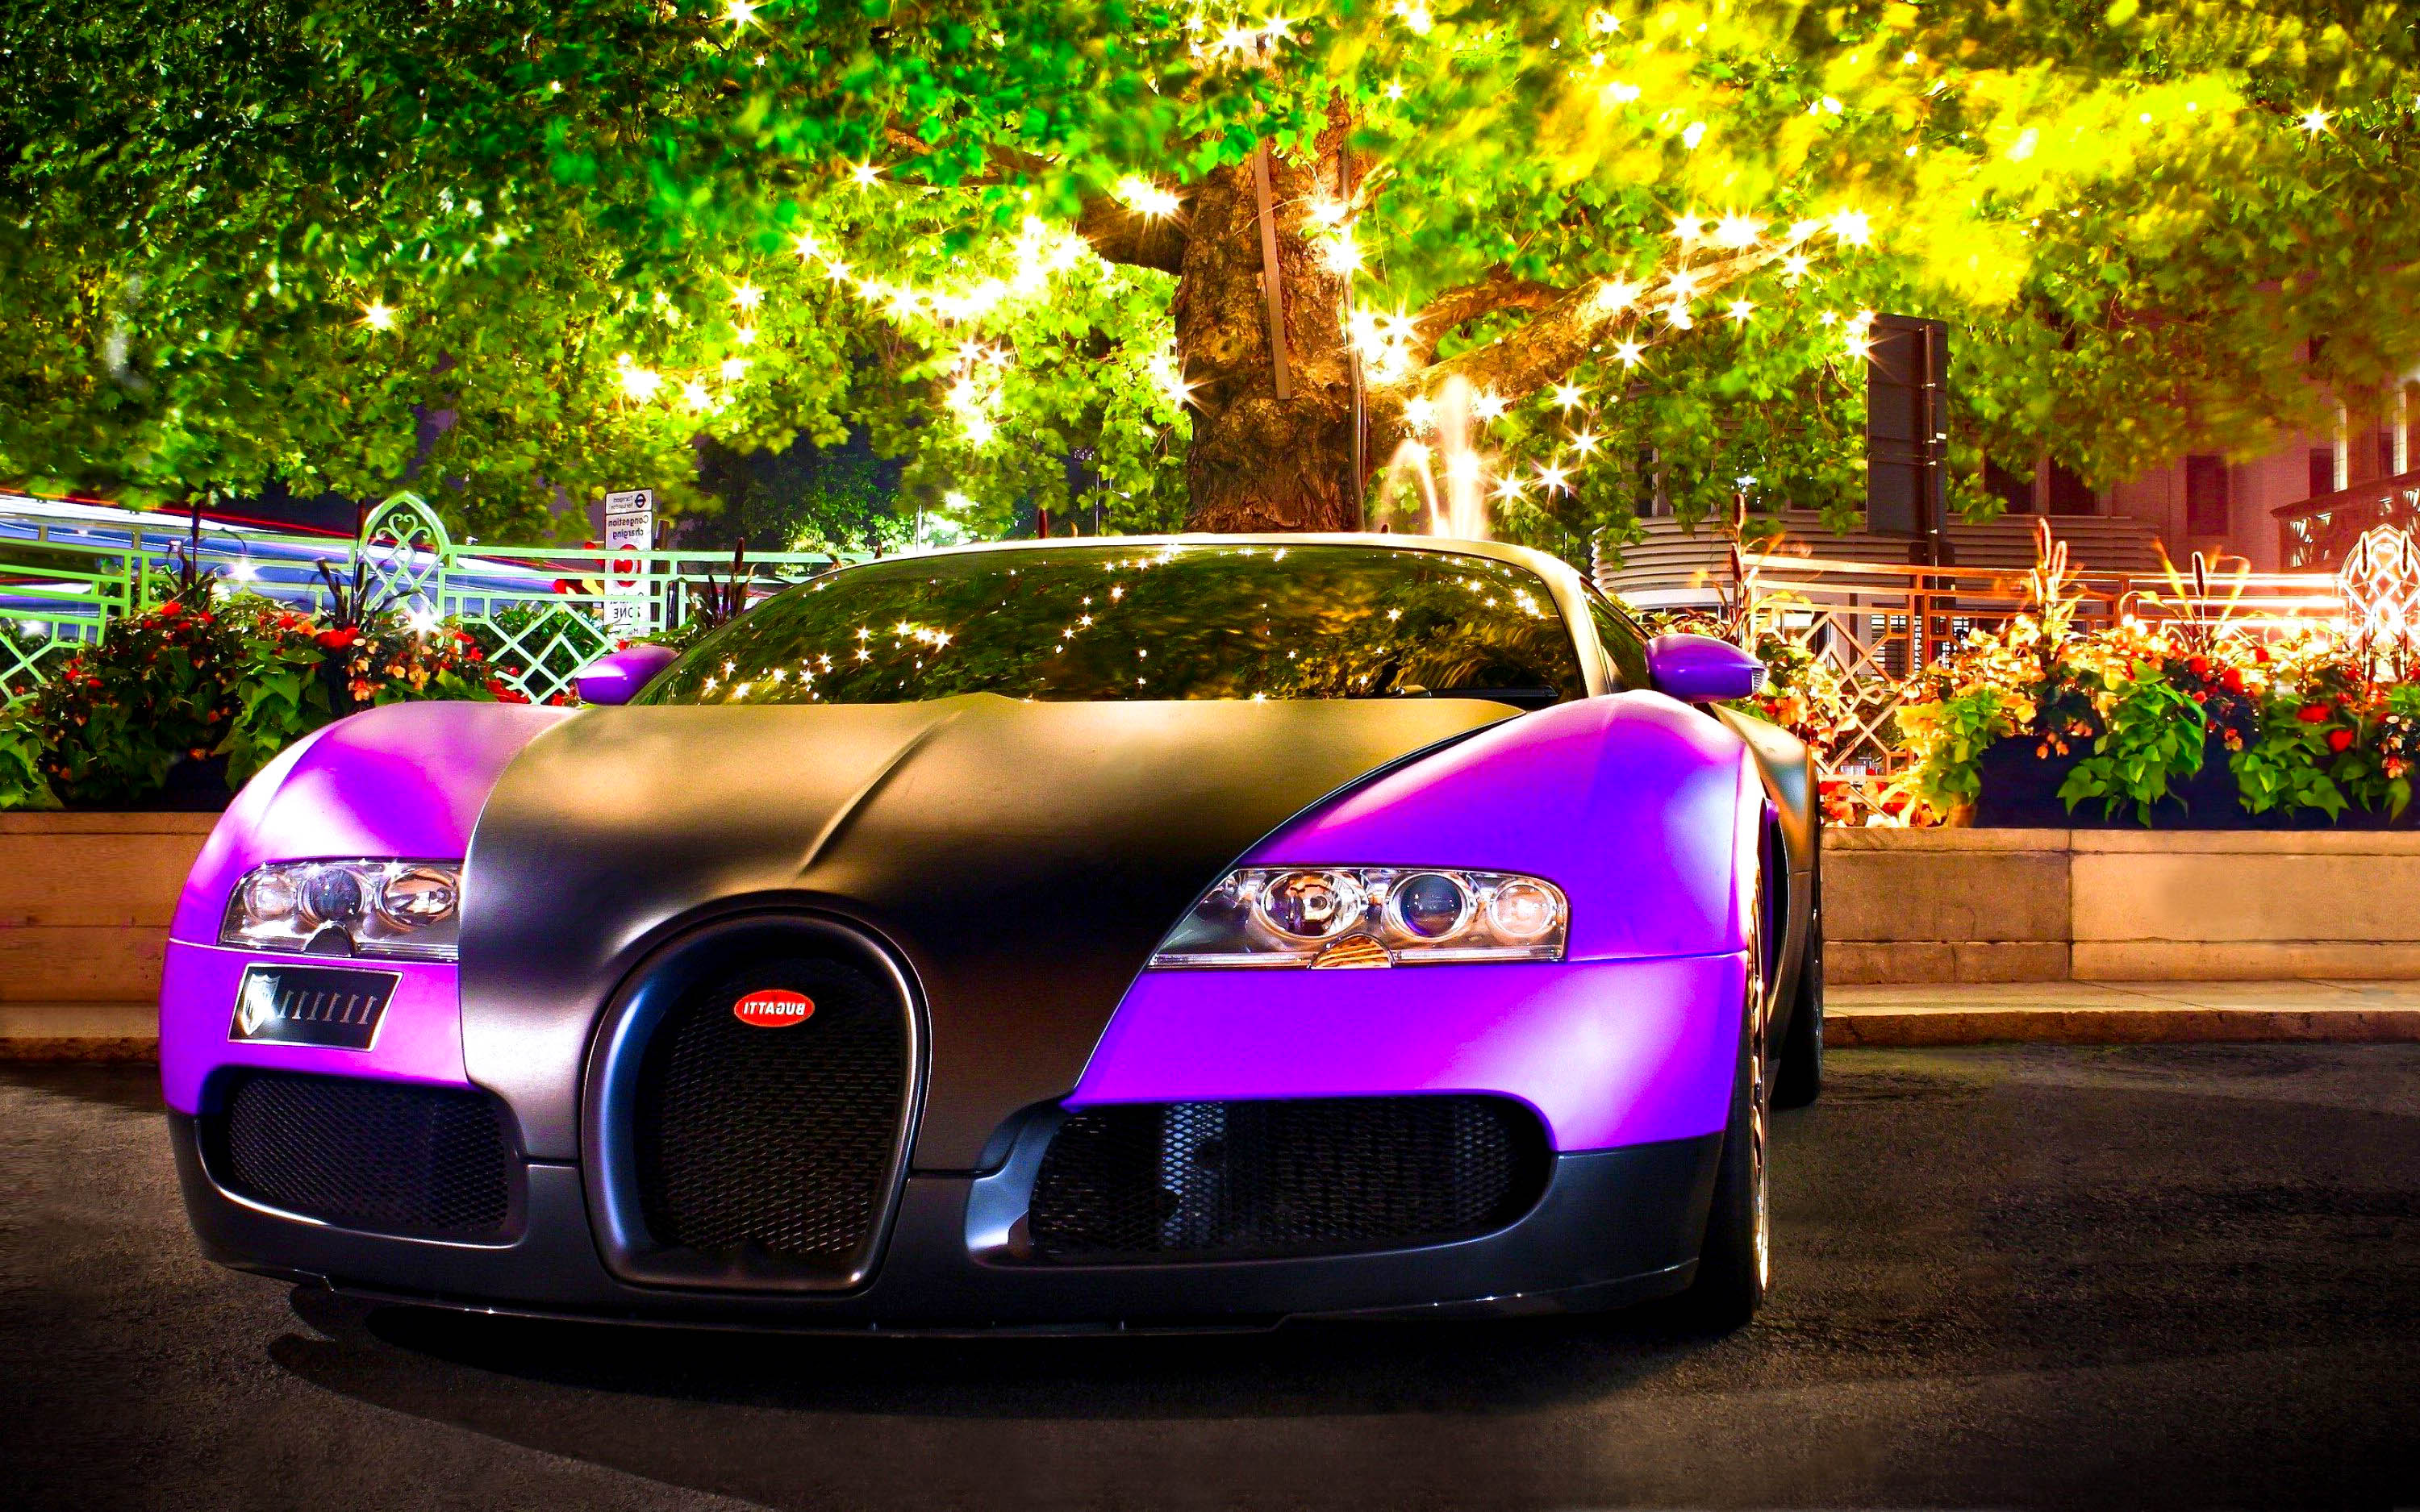 Bugatti Hd Wallpapers Free Download Bugatti Veyron Wallpapers Amp Pictures In High Quality All